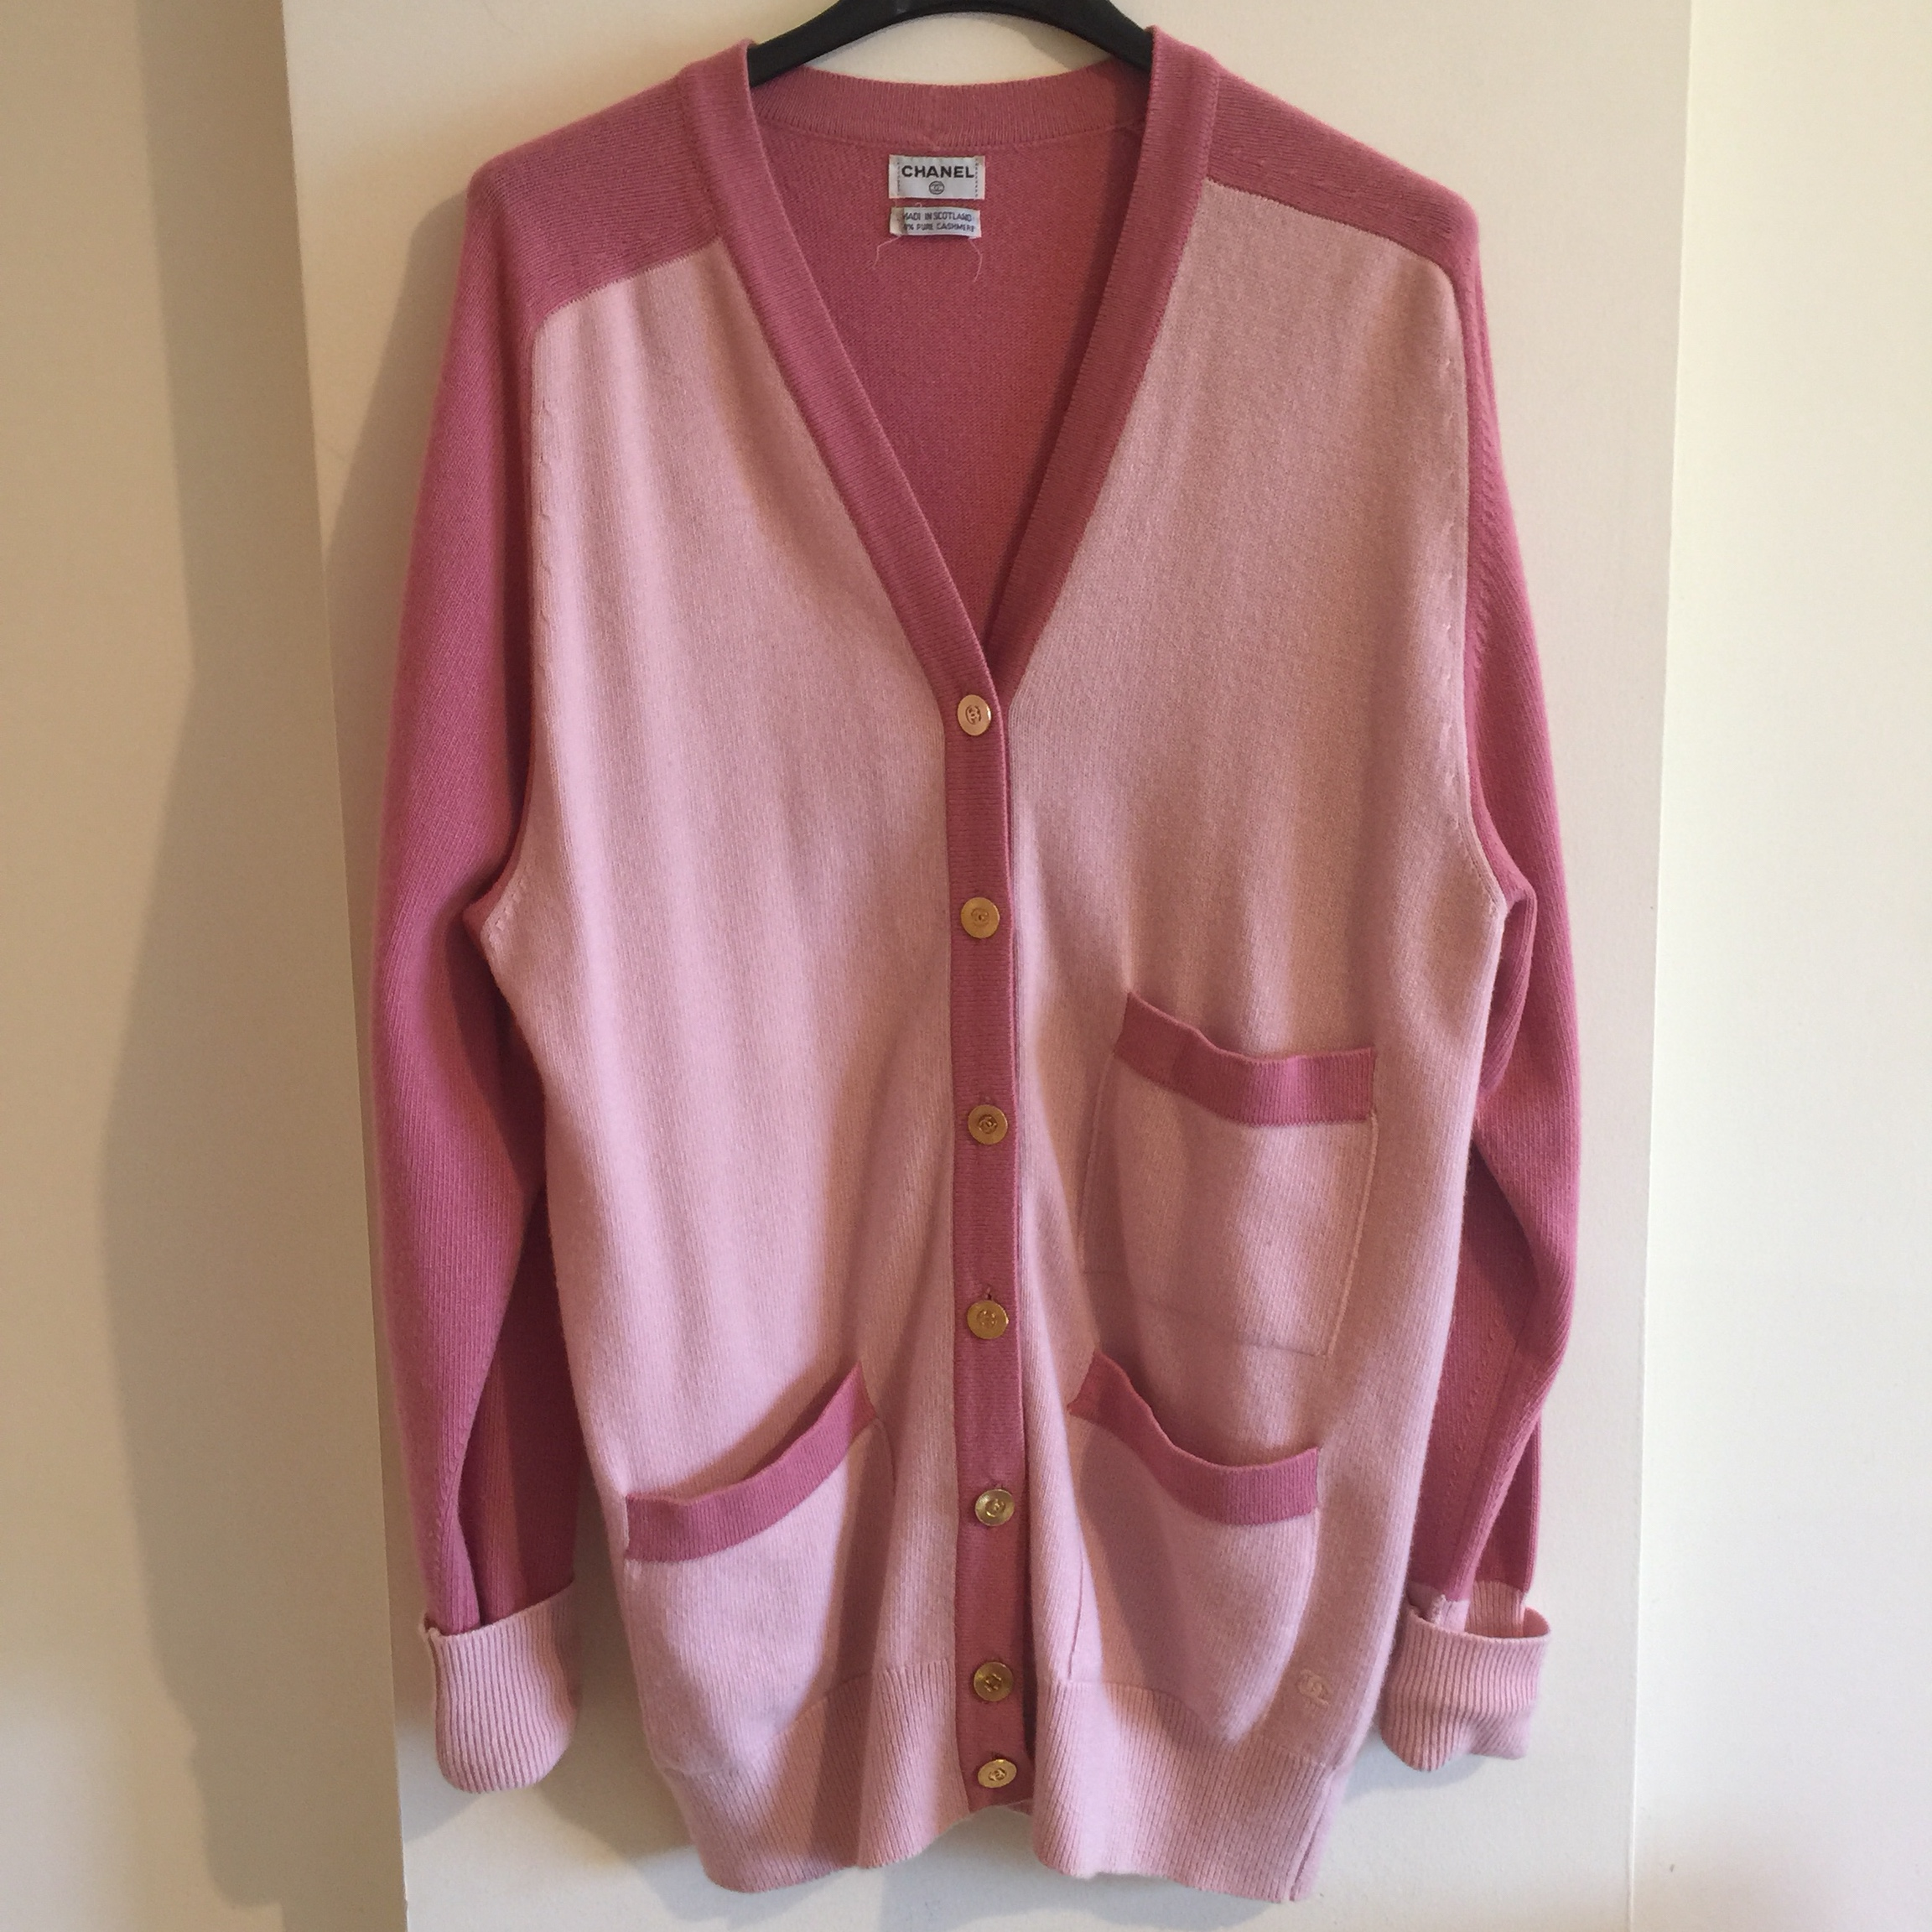 Vintage pink cardigan with golden buttons